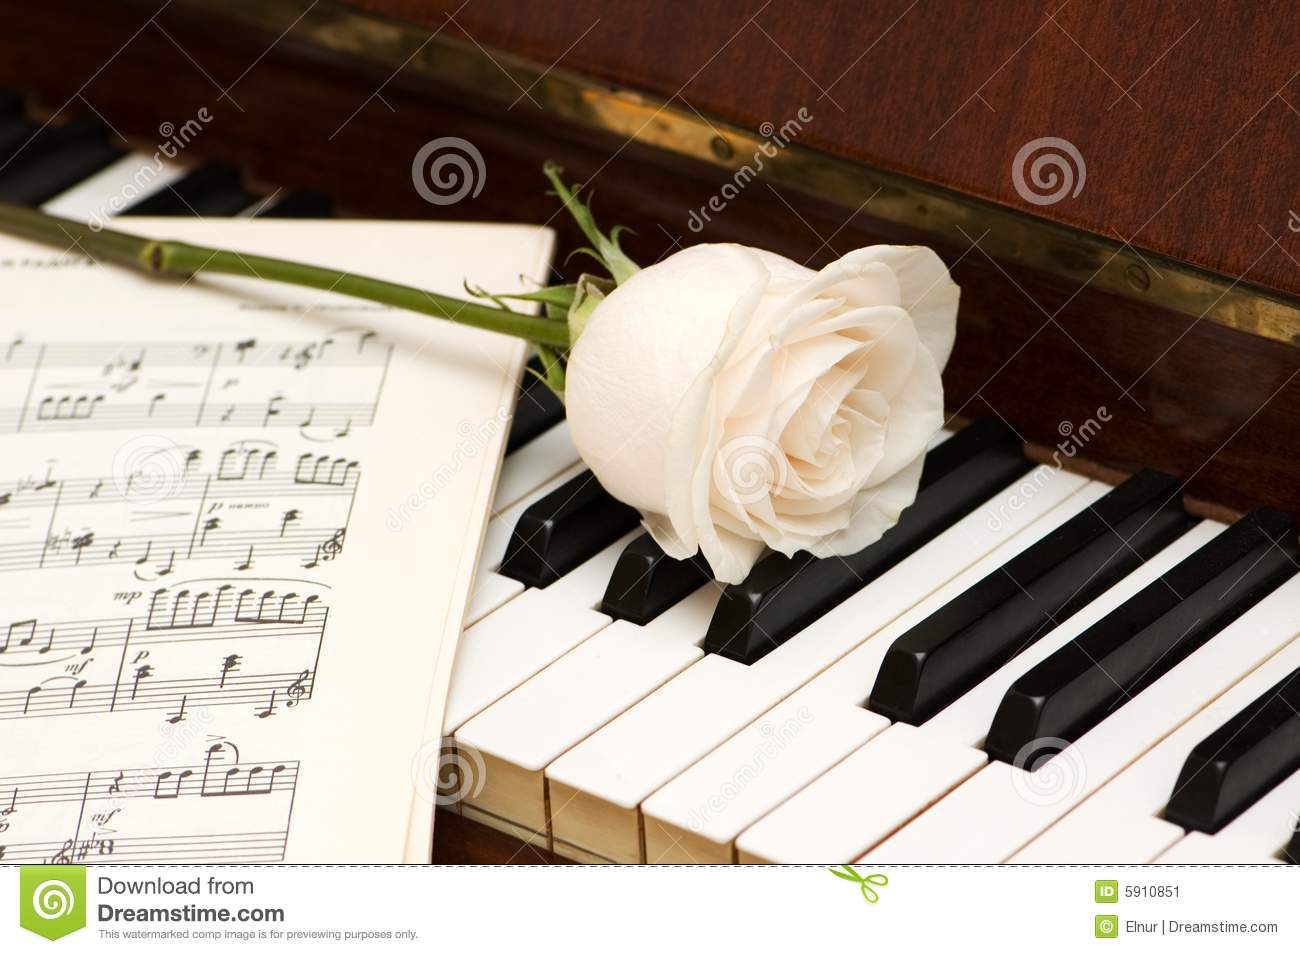 Rose Piano Wallpaper 52999